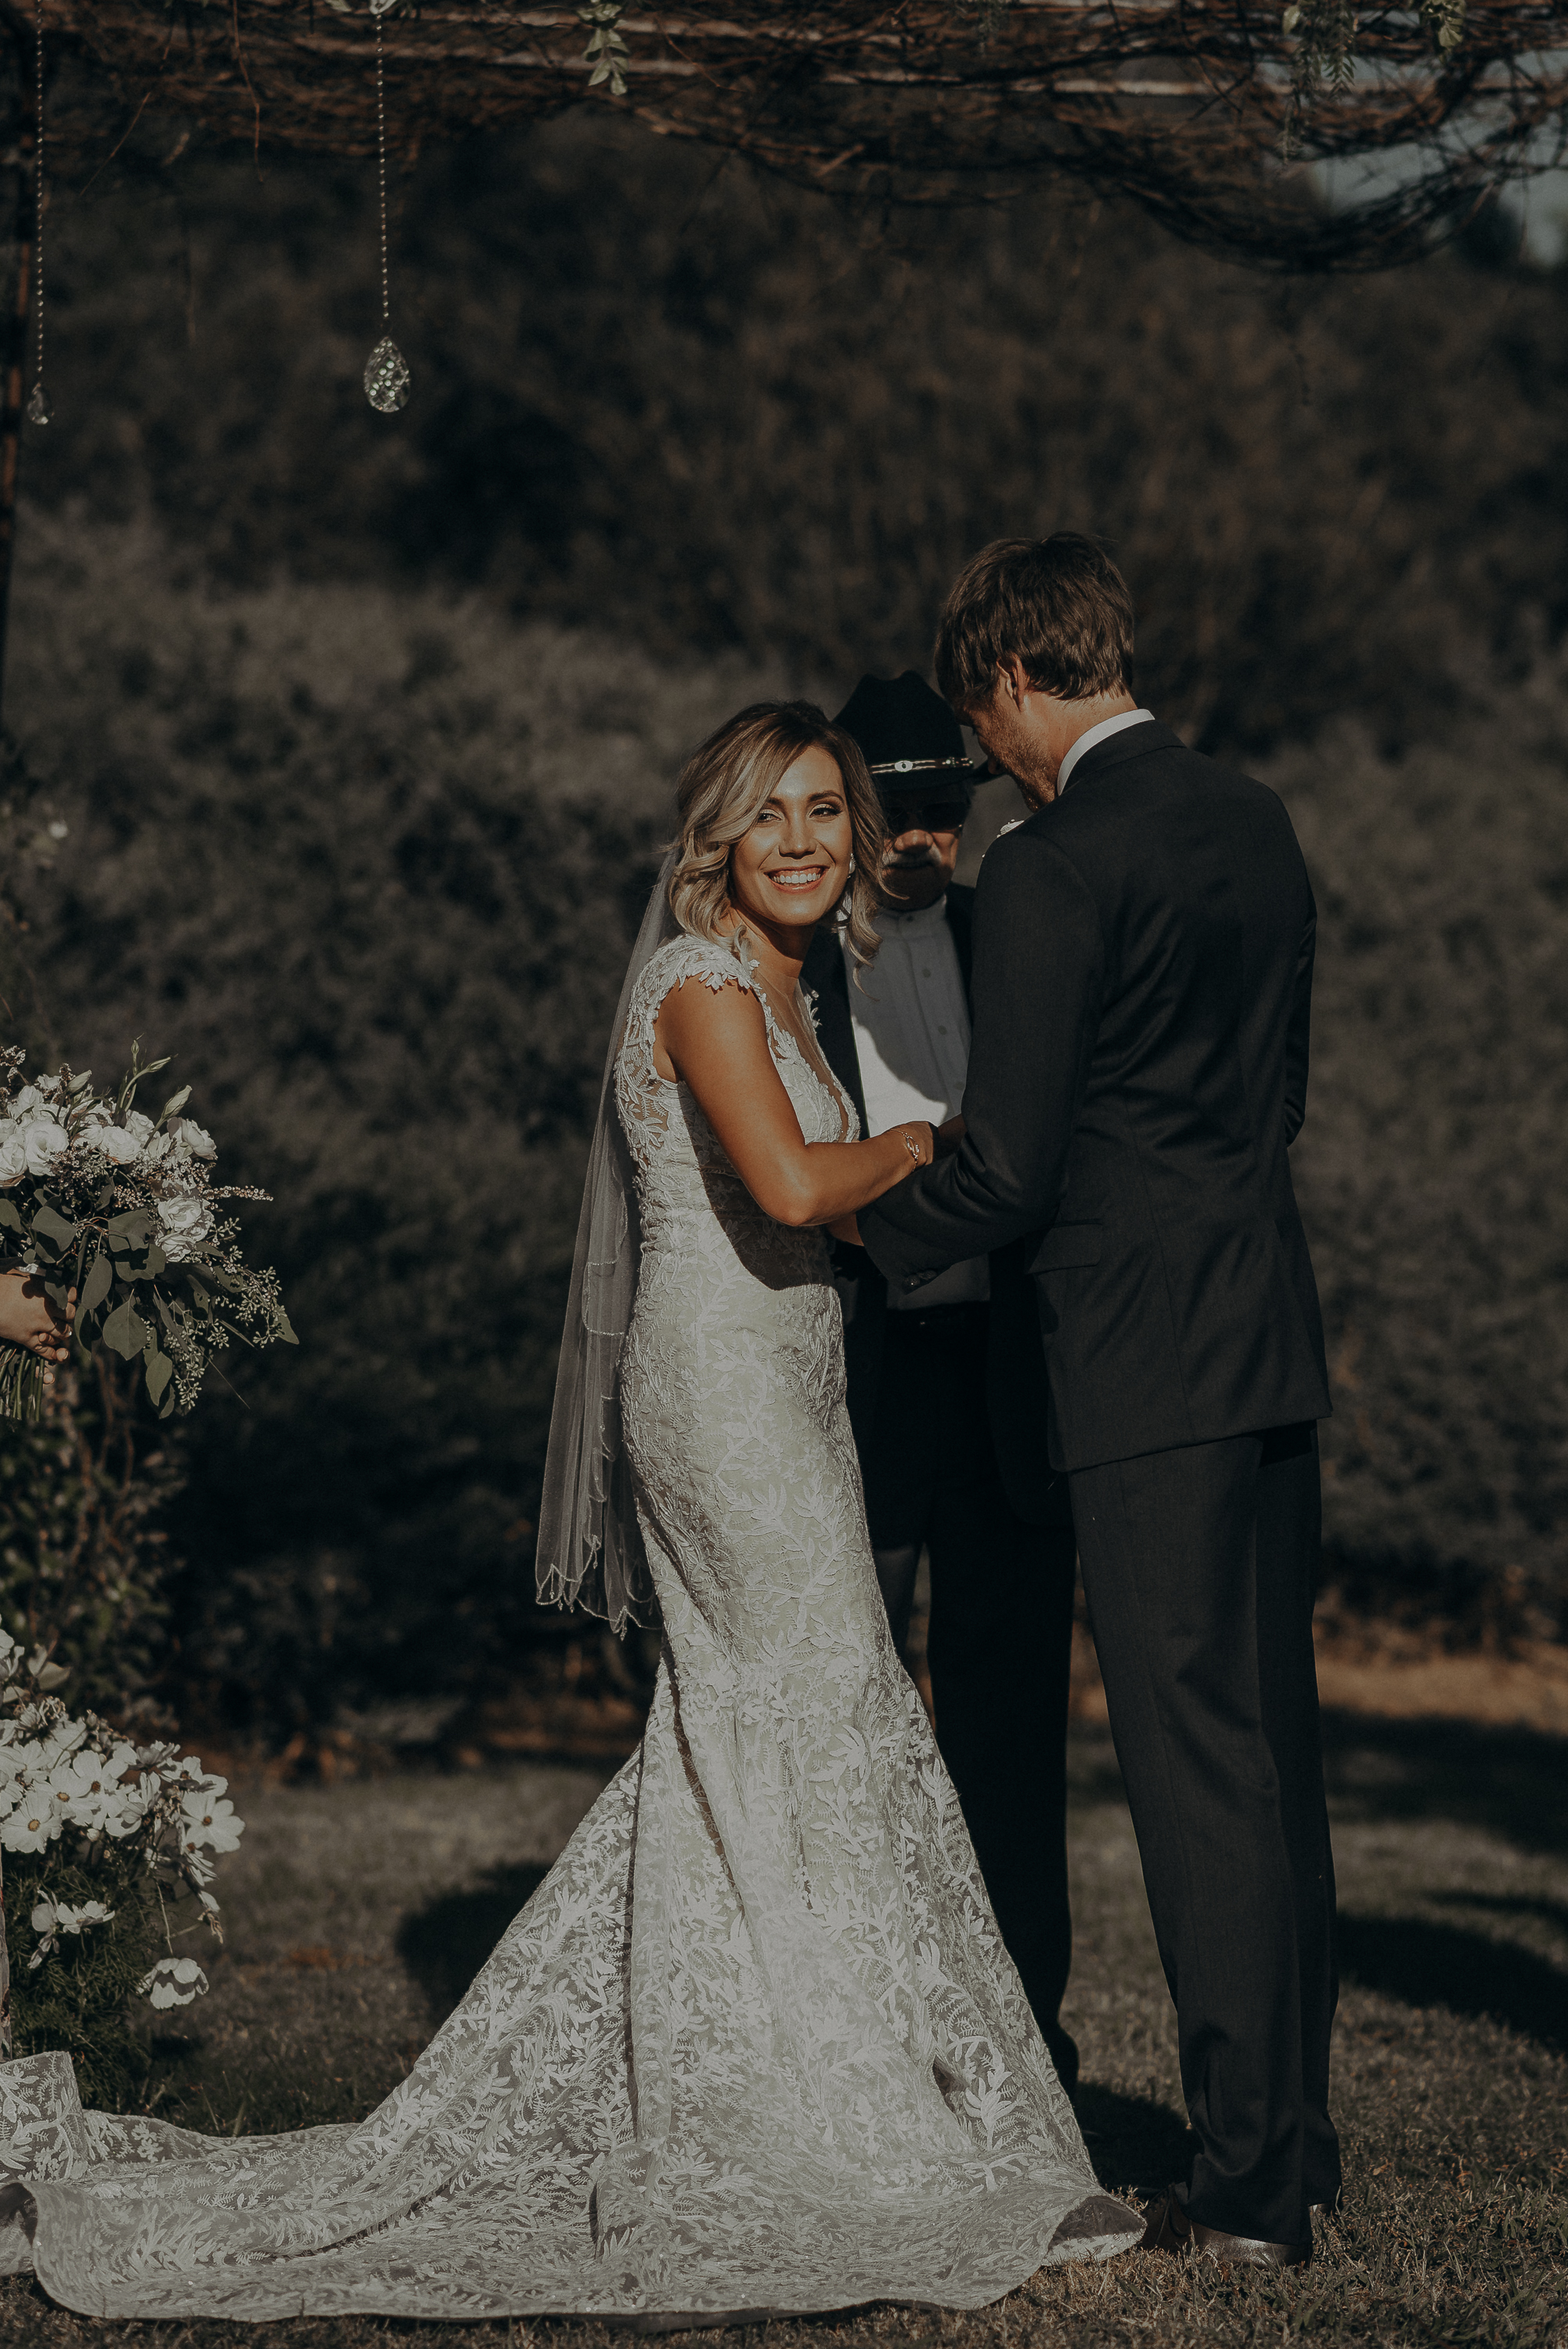 Isaiah + Taylor Photography - Los Angeles Wedding Photographer - Open Air Resort Wedding-60.jpg